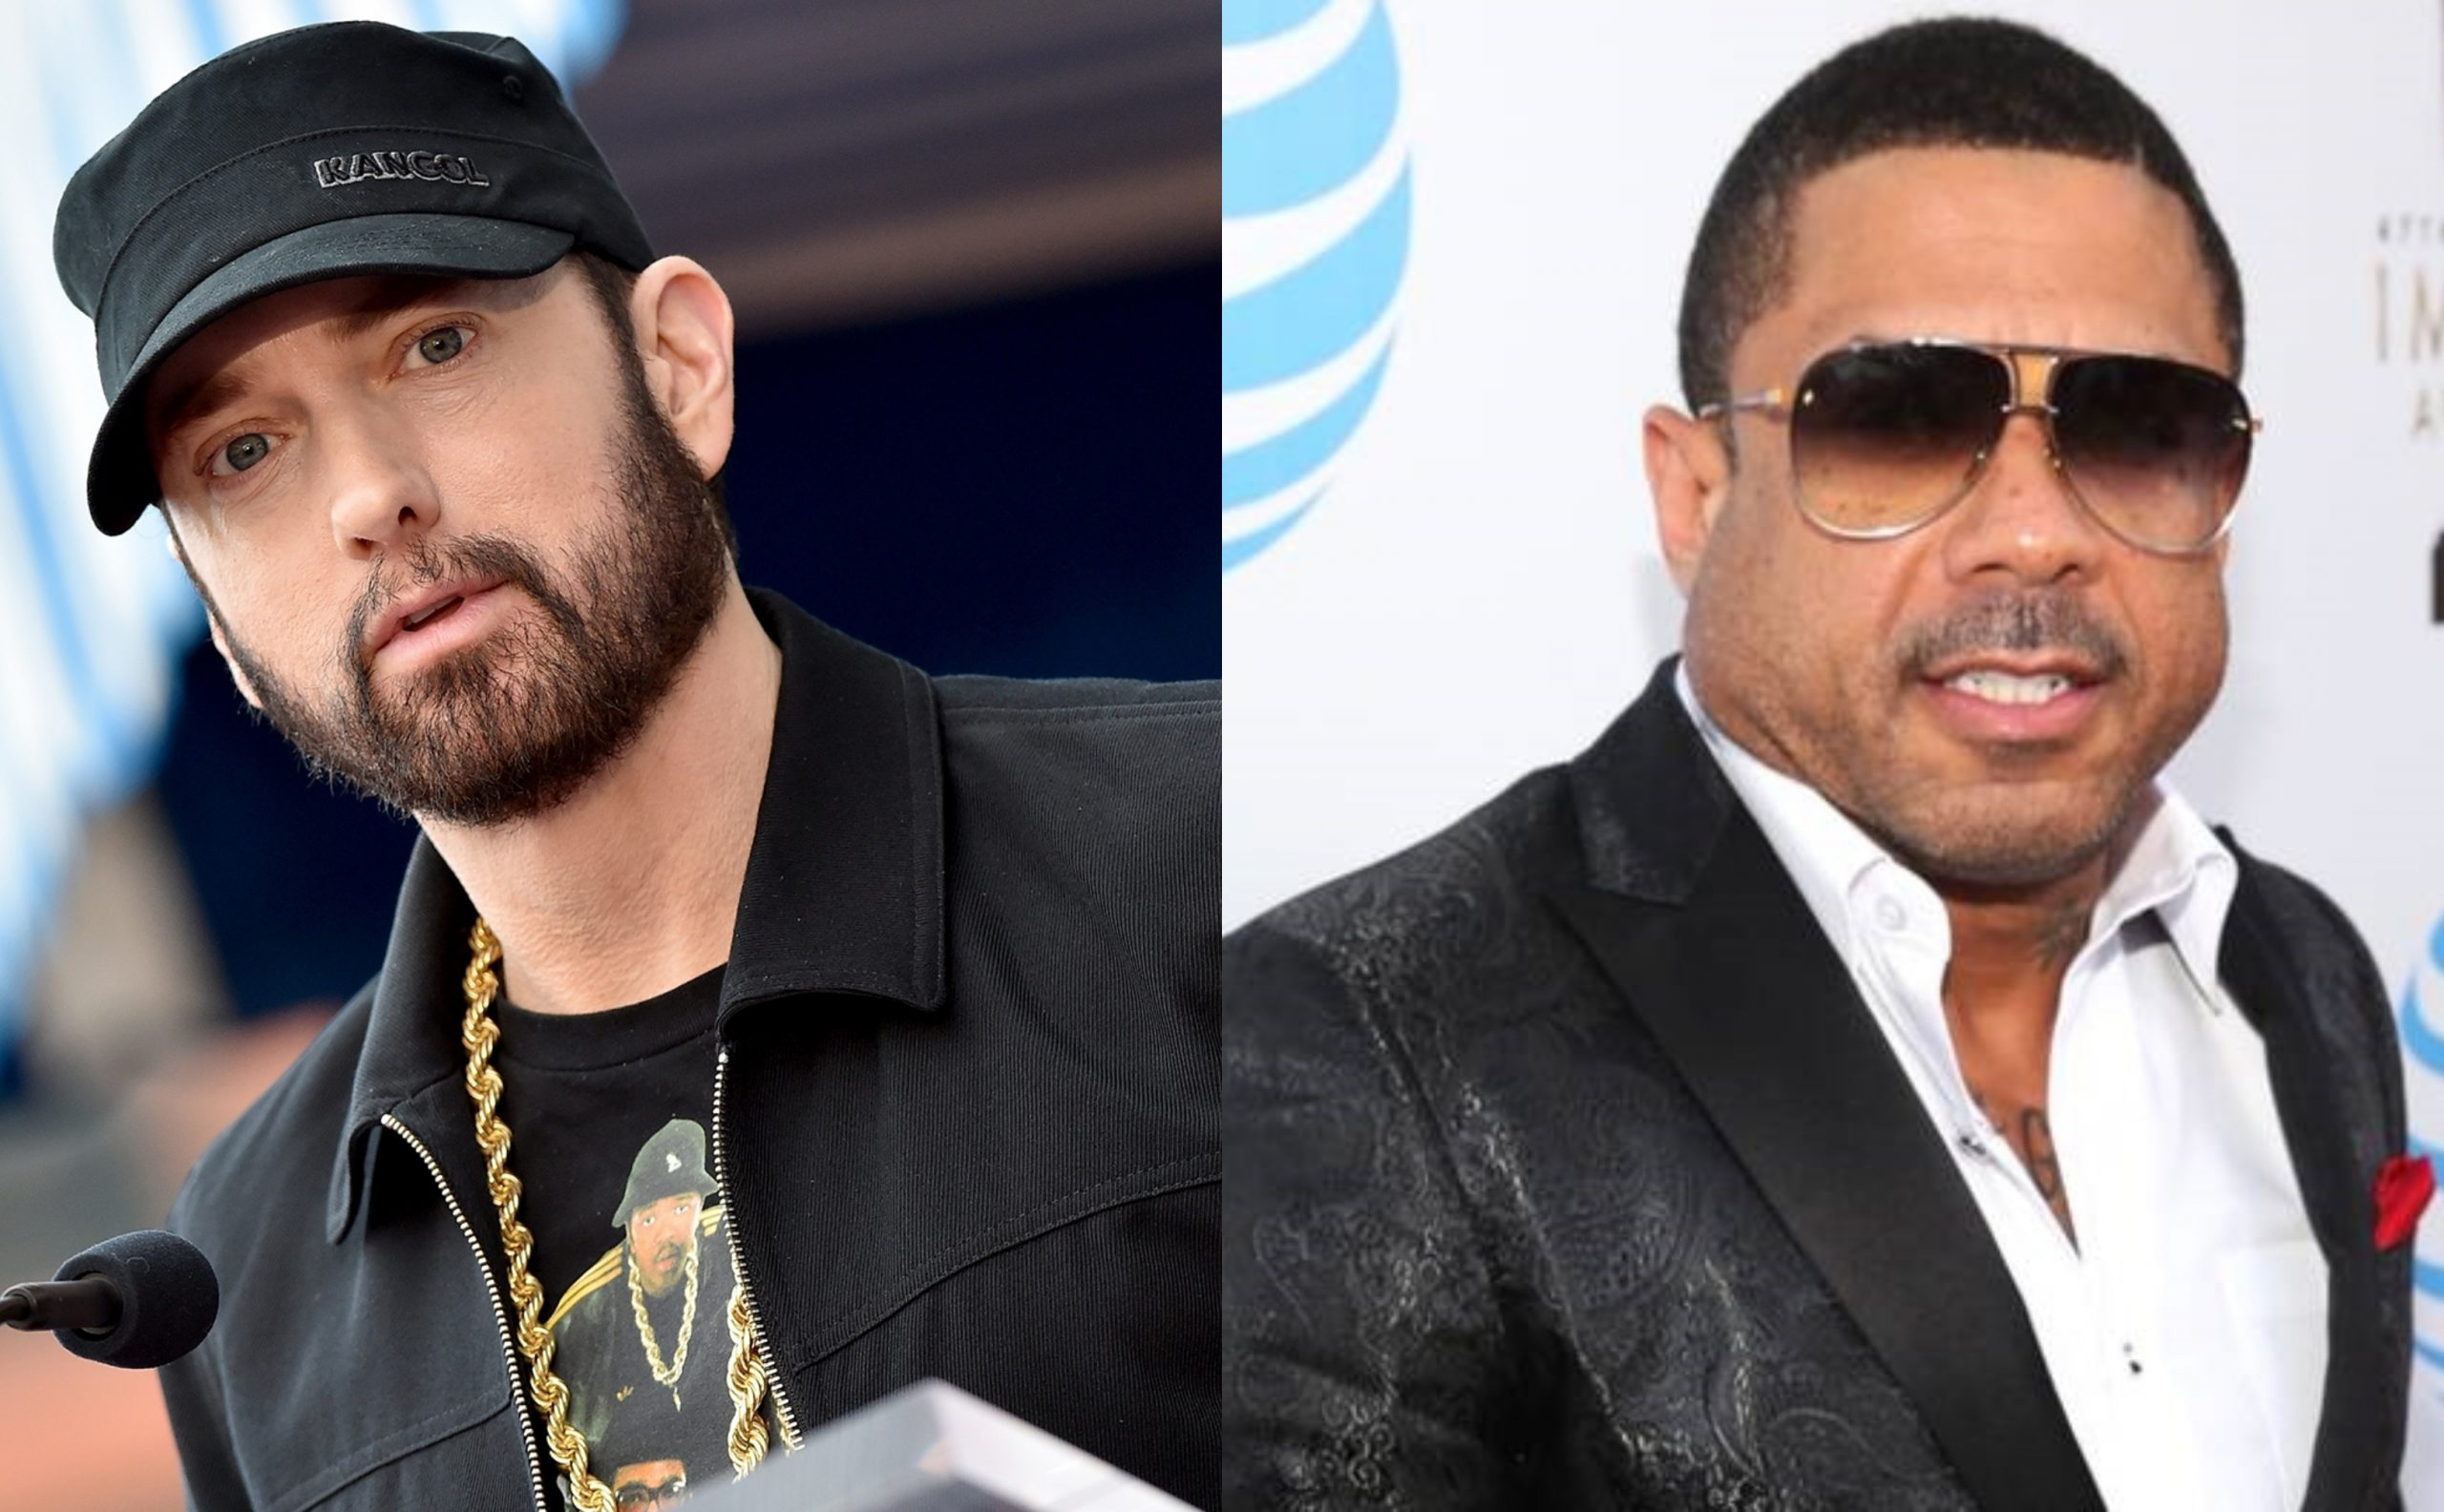 Benzino Is Gloating Over Snoop Dogg's Remark About Eminem